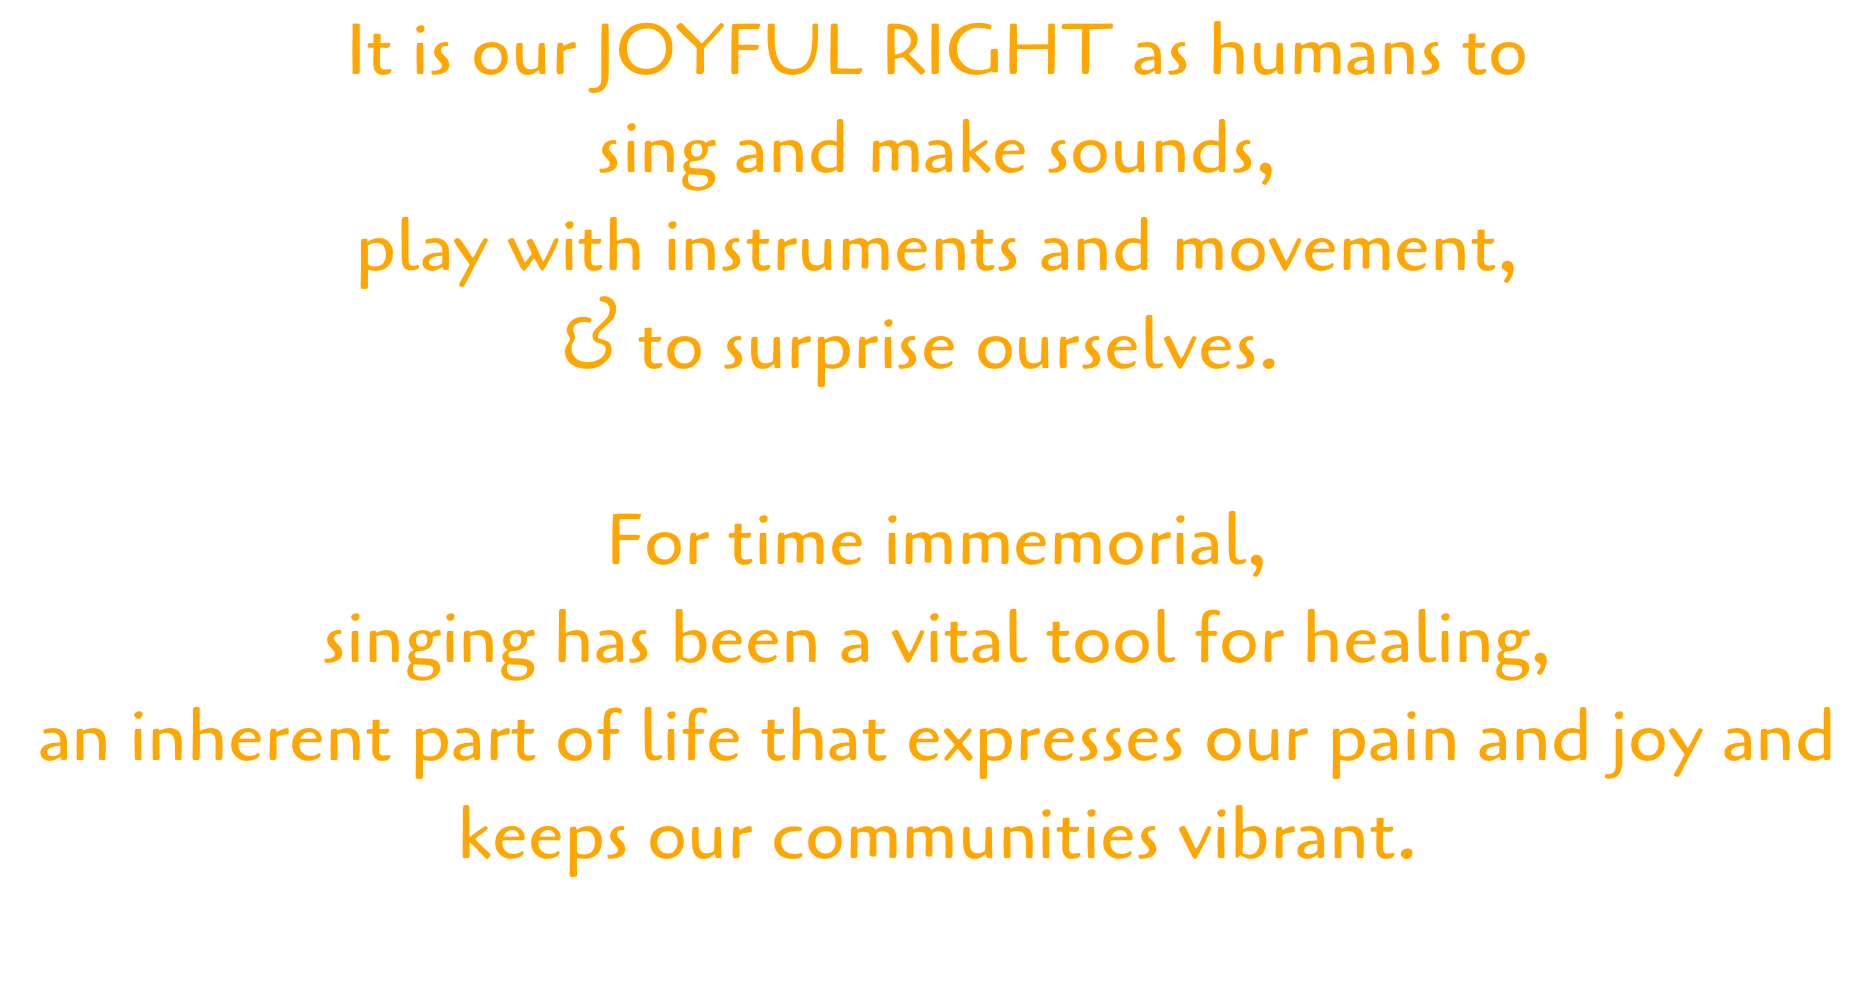 joyful right